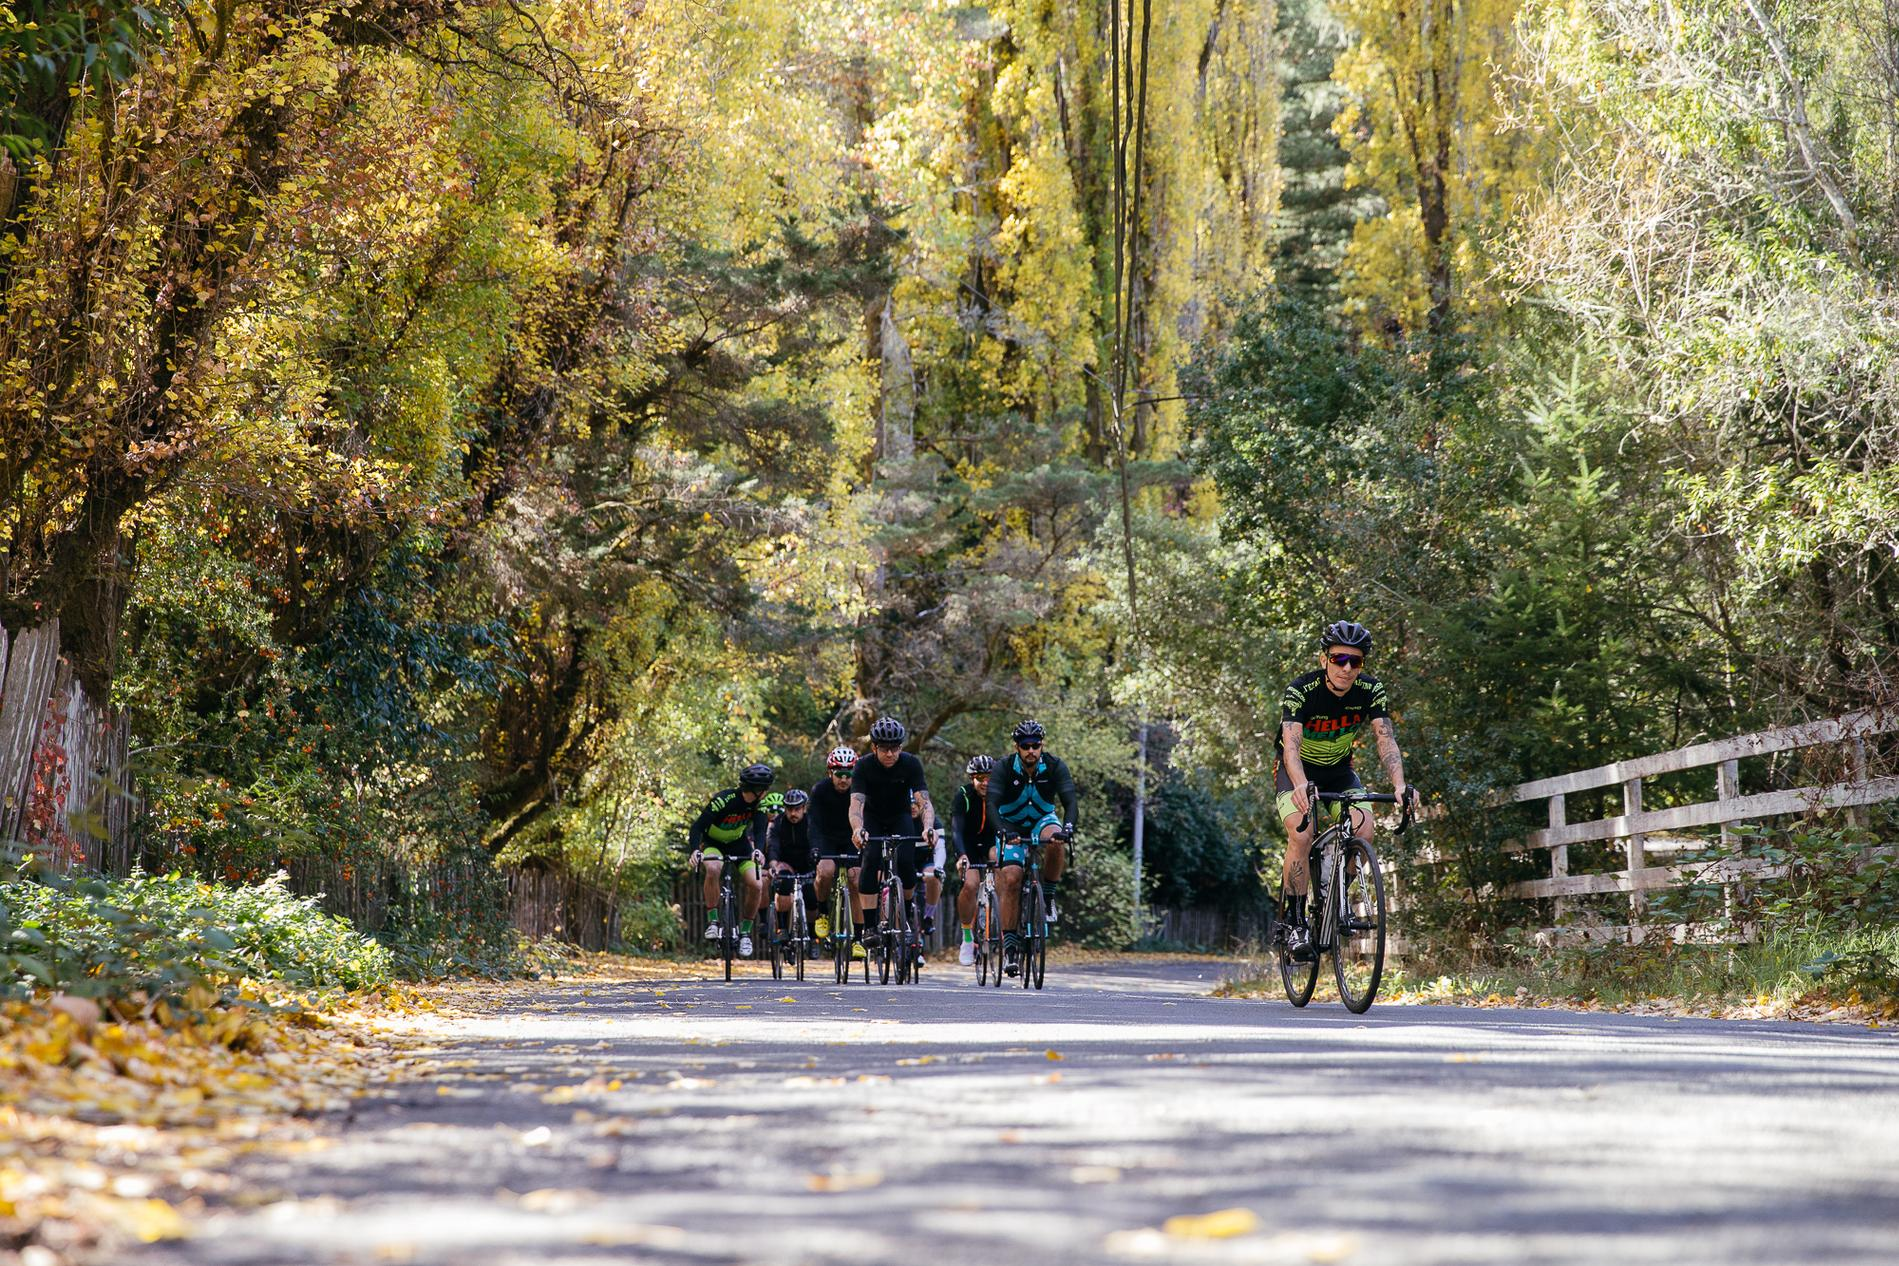 Riding in Guerneville California with Argonaut Cycles and Chris King